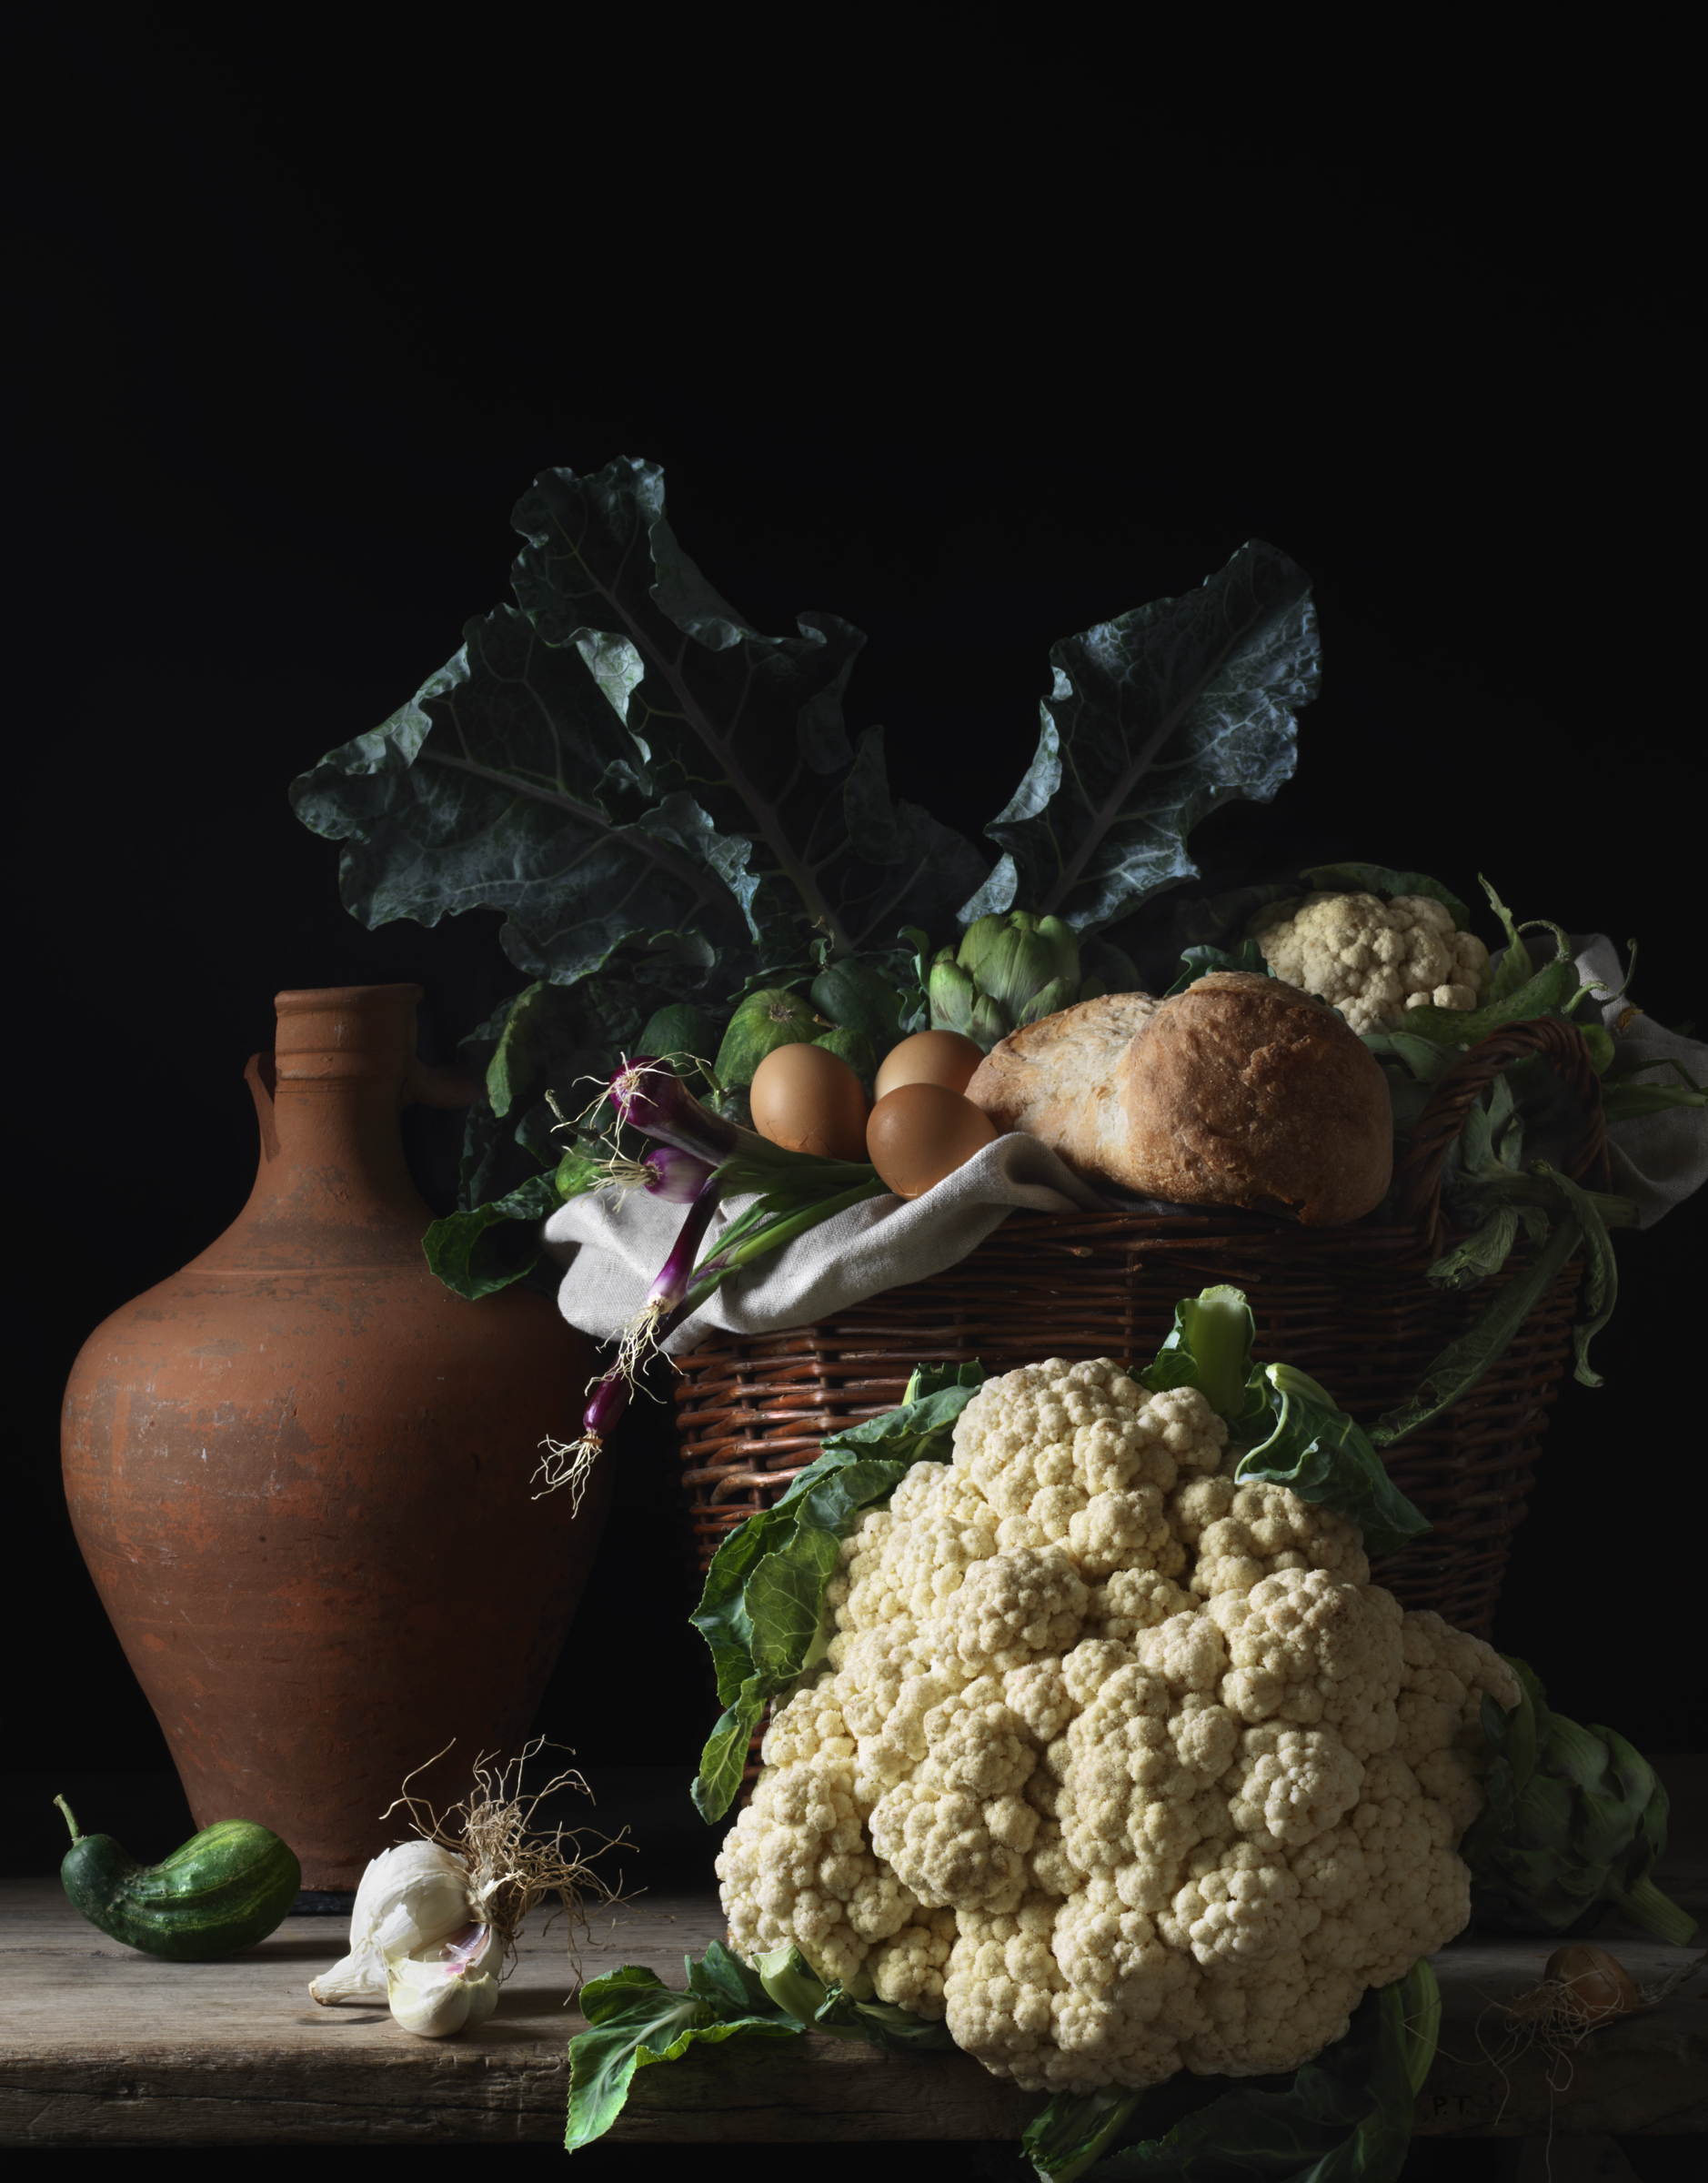 Still Life With Cauliflower and Basket, After L.M., 2014